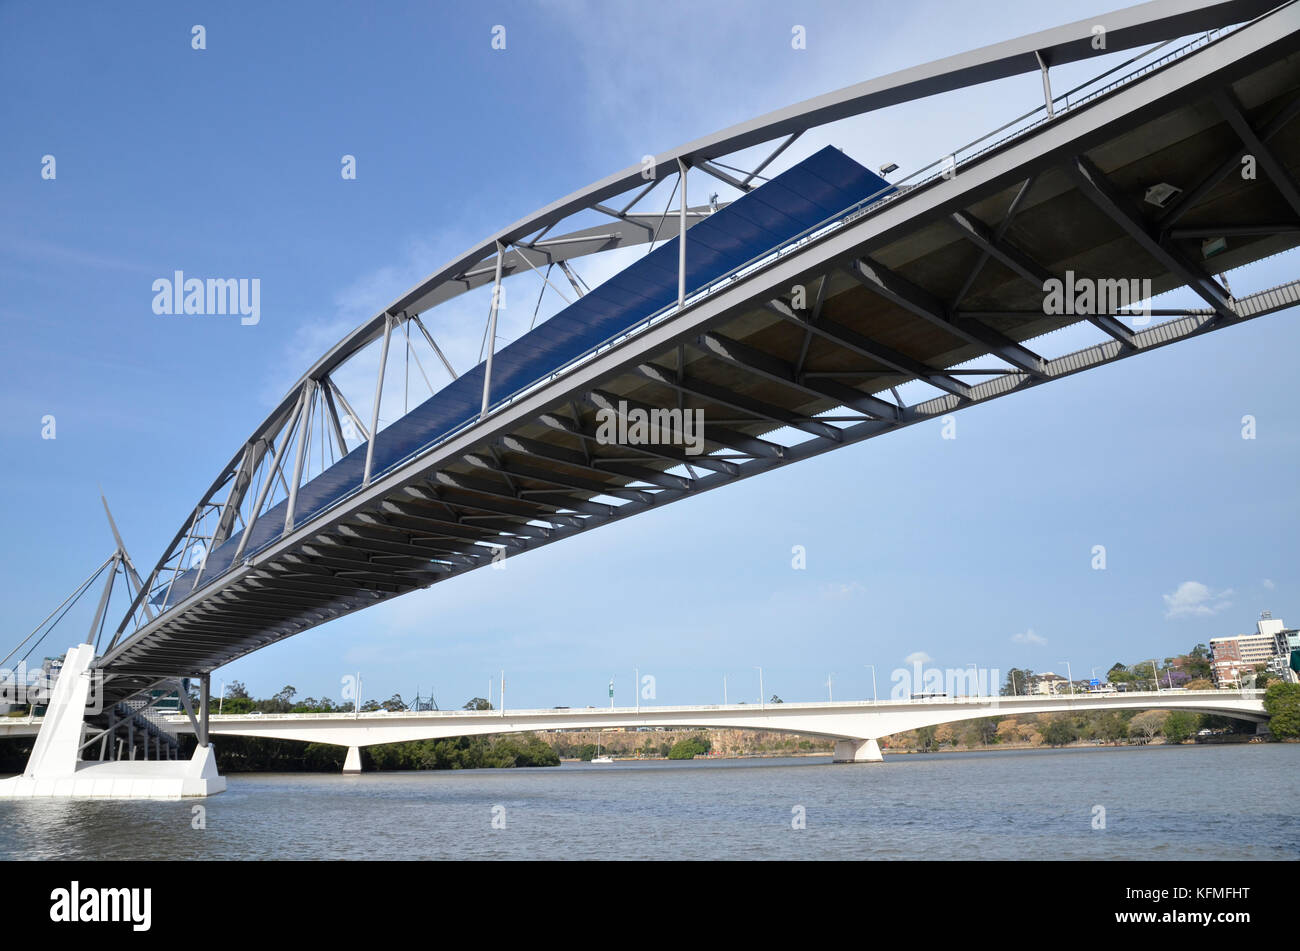 The Goodwill and Captain Cook bridges crossing the Brisbane River in Brisbane, Queensland, Australia - Stock Image